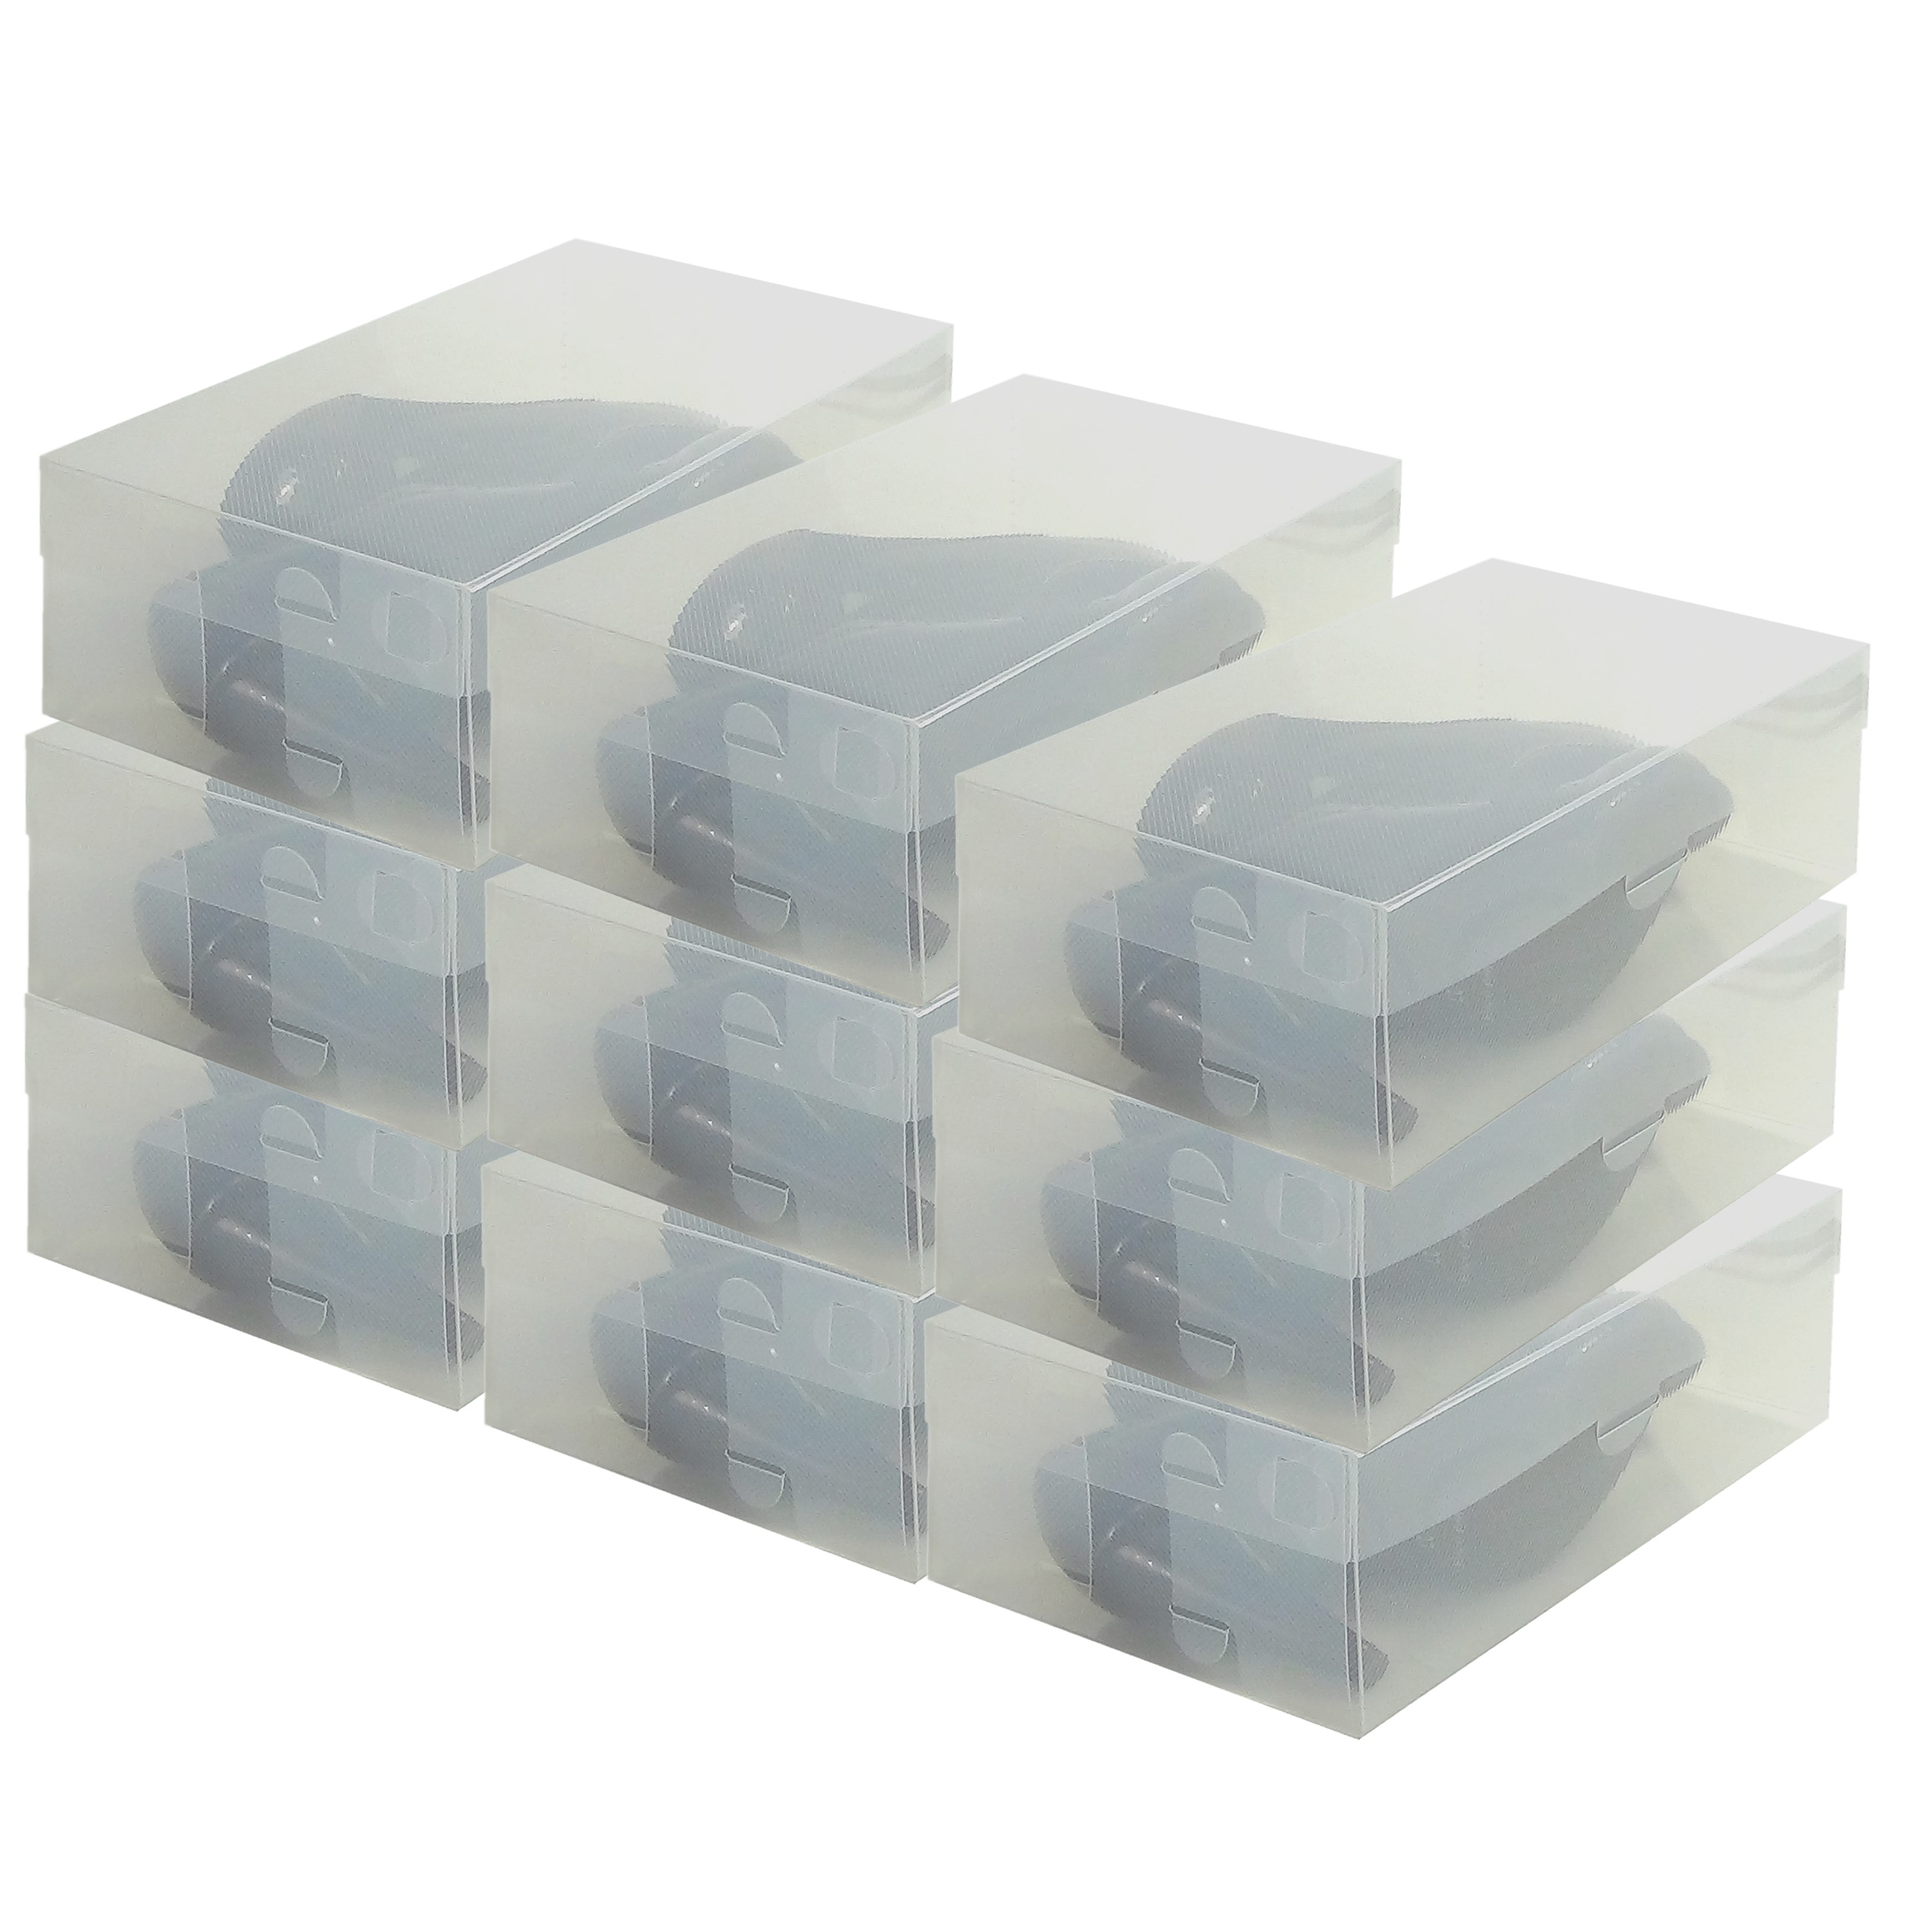 Details About 9x Dynasun Pp437 Heavy Duty Clear Plastic Shoe Storage Box Container Organizer